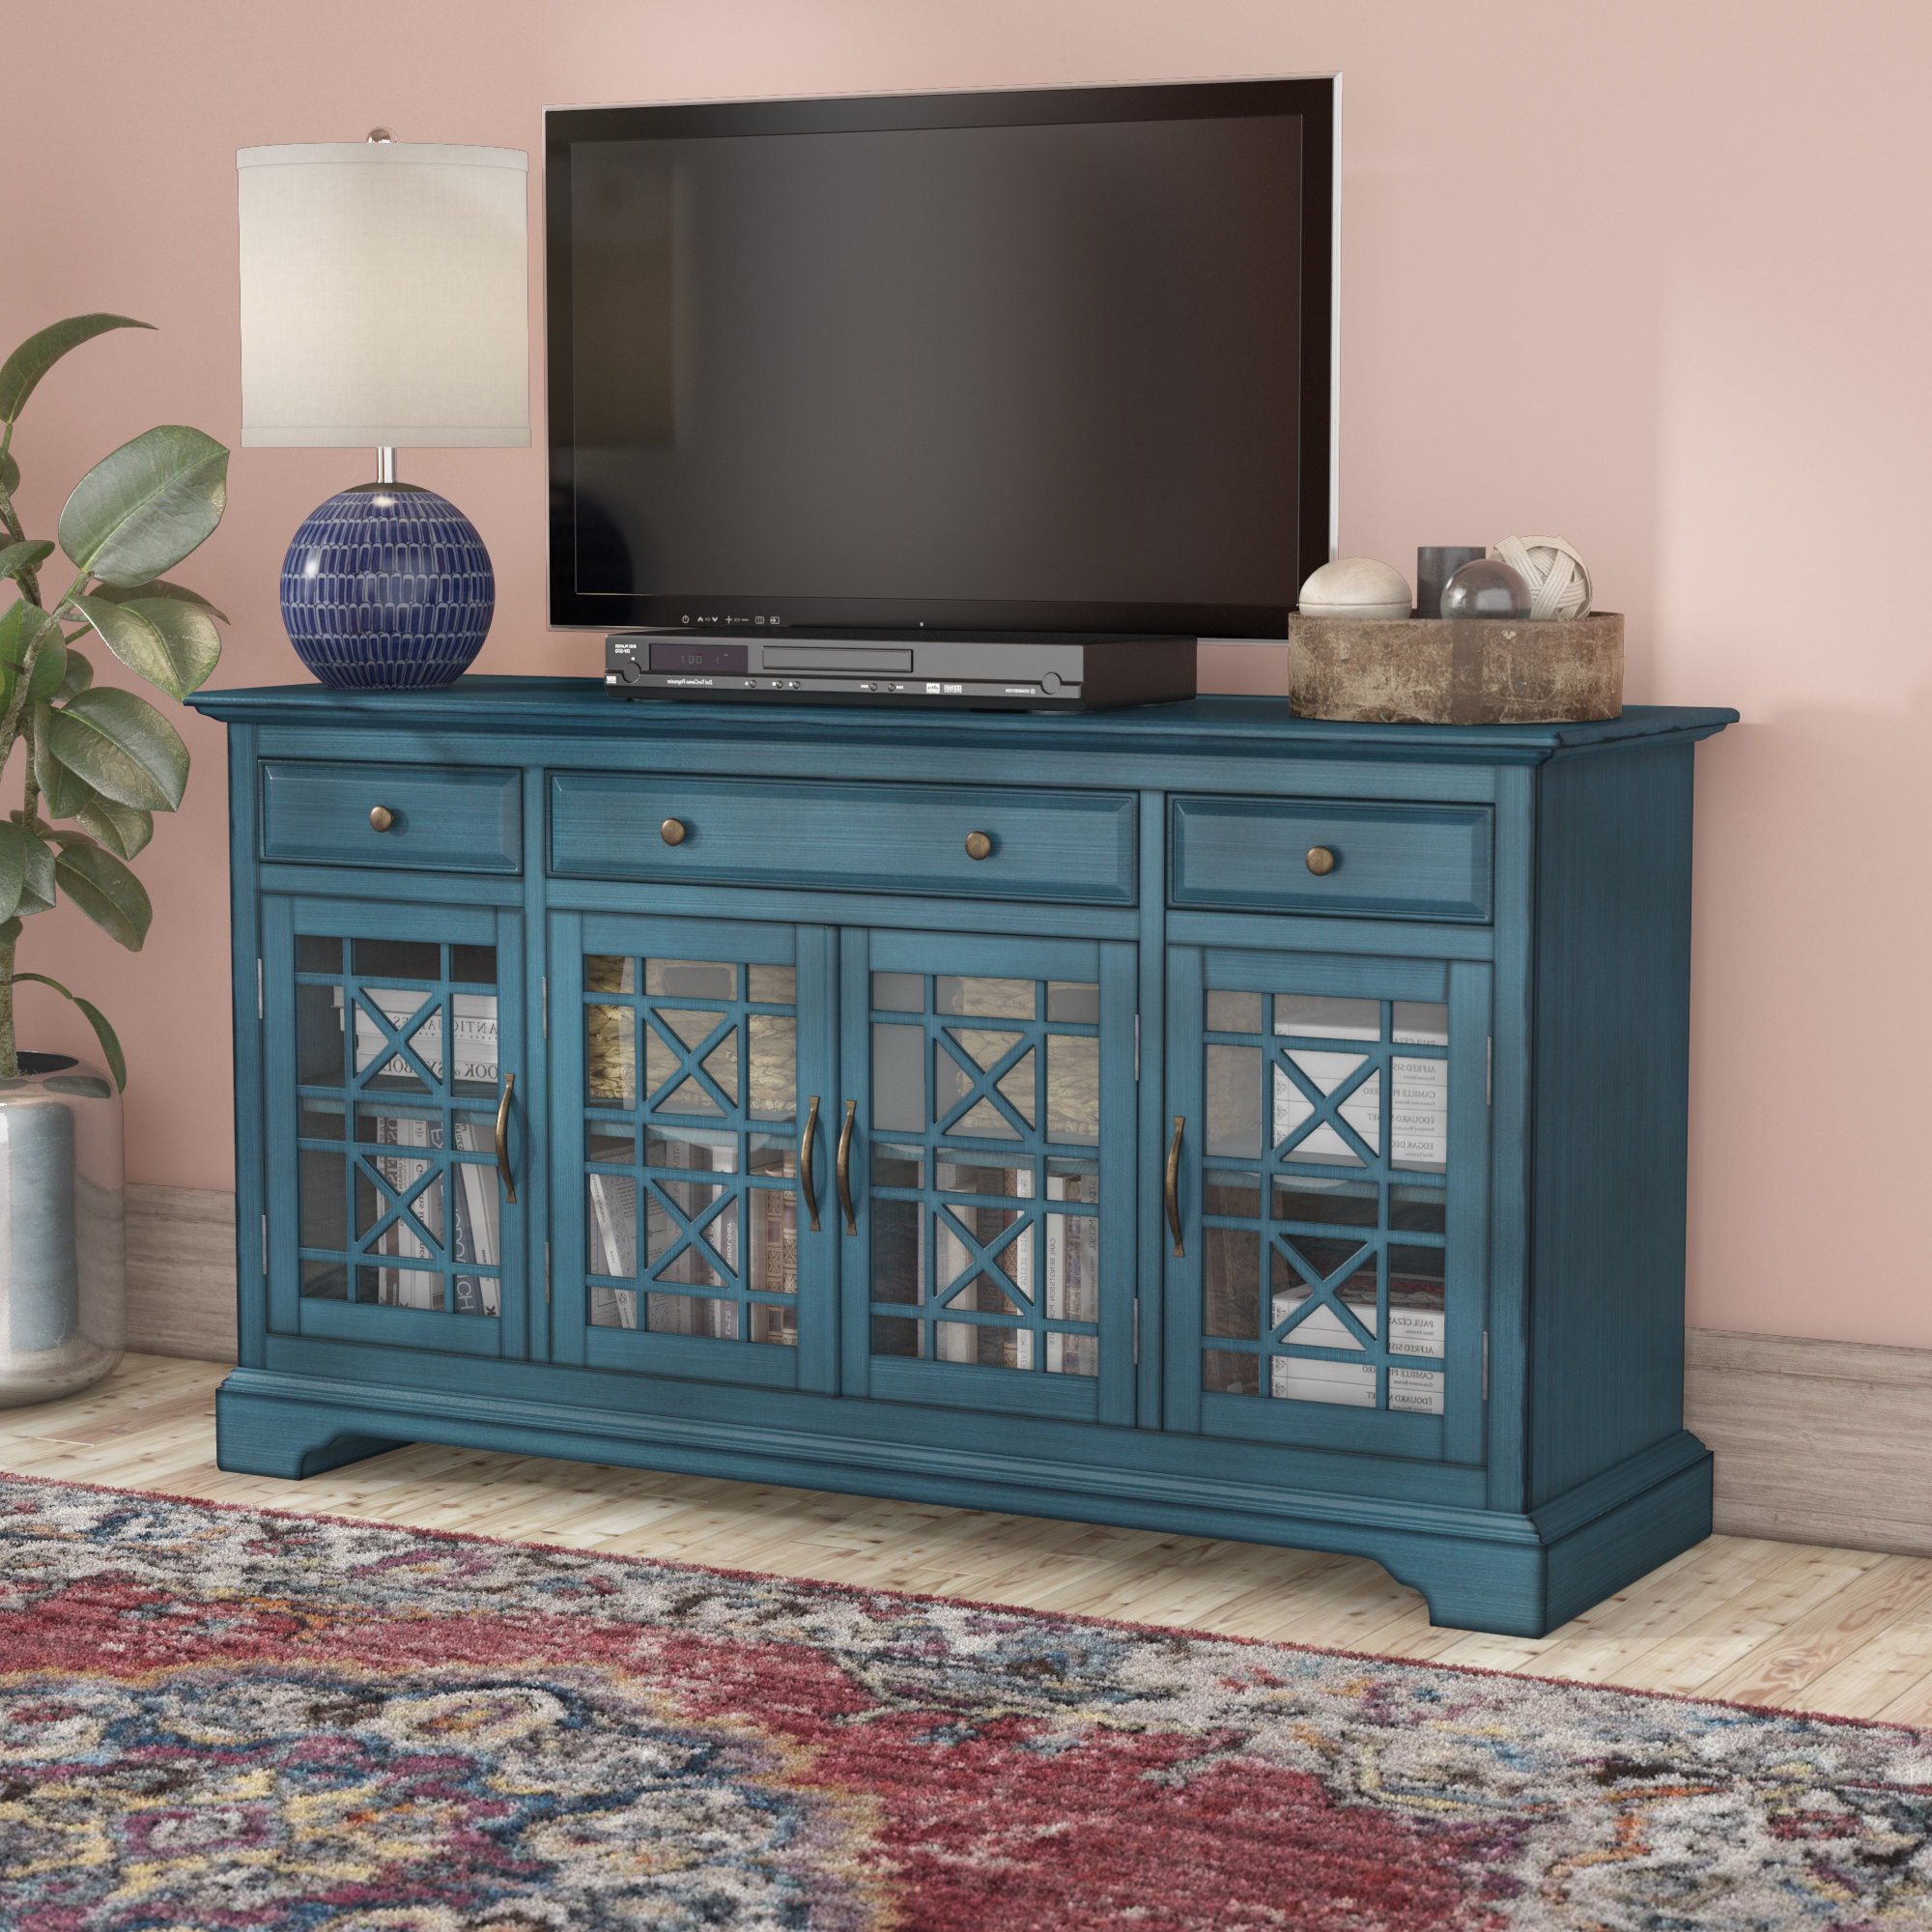 Blue Tv Stands You'll Love | Wayfair In Century Sky 60 Inch Tv Stands (View 16 of 20)